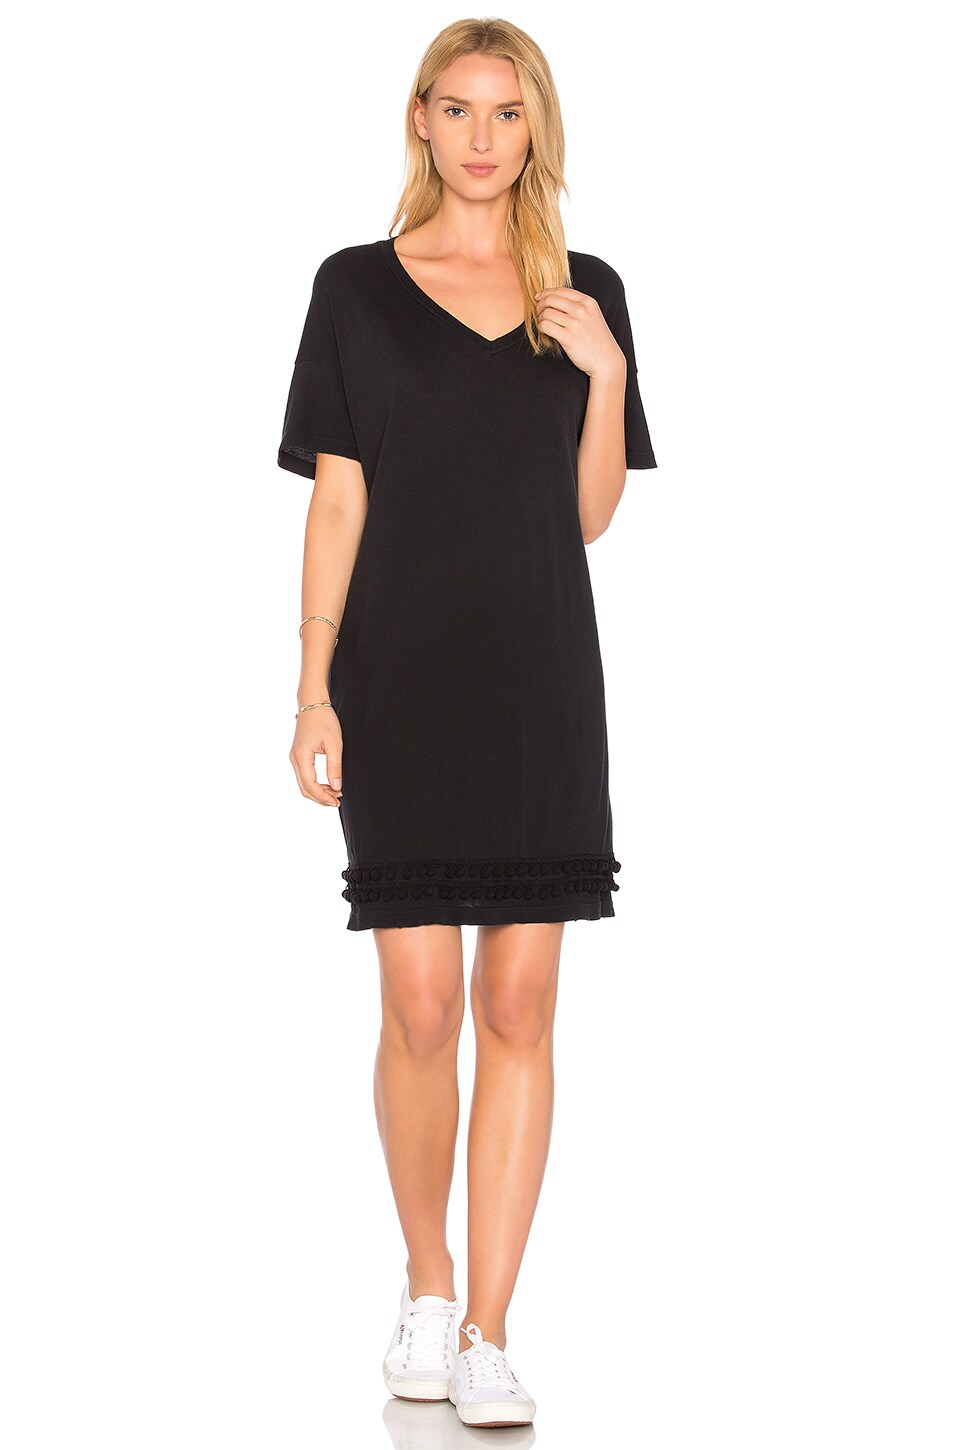 The Pom Pom Tee Dress by Current/Elliott